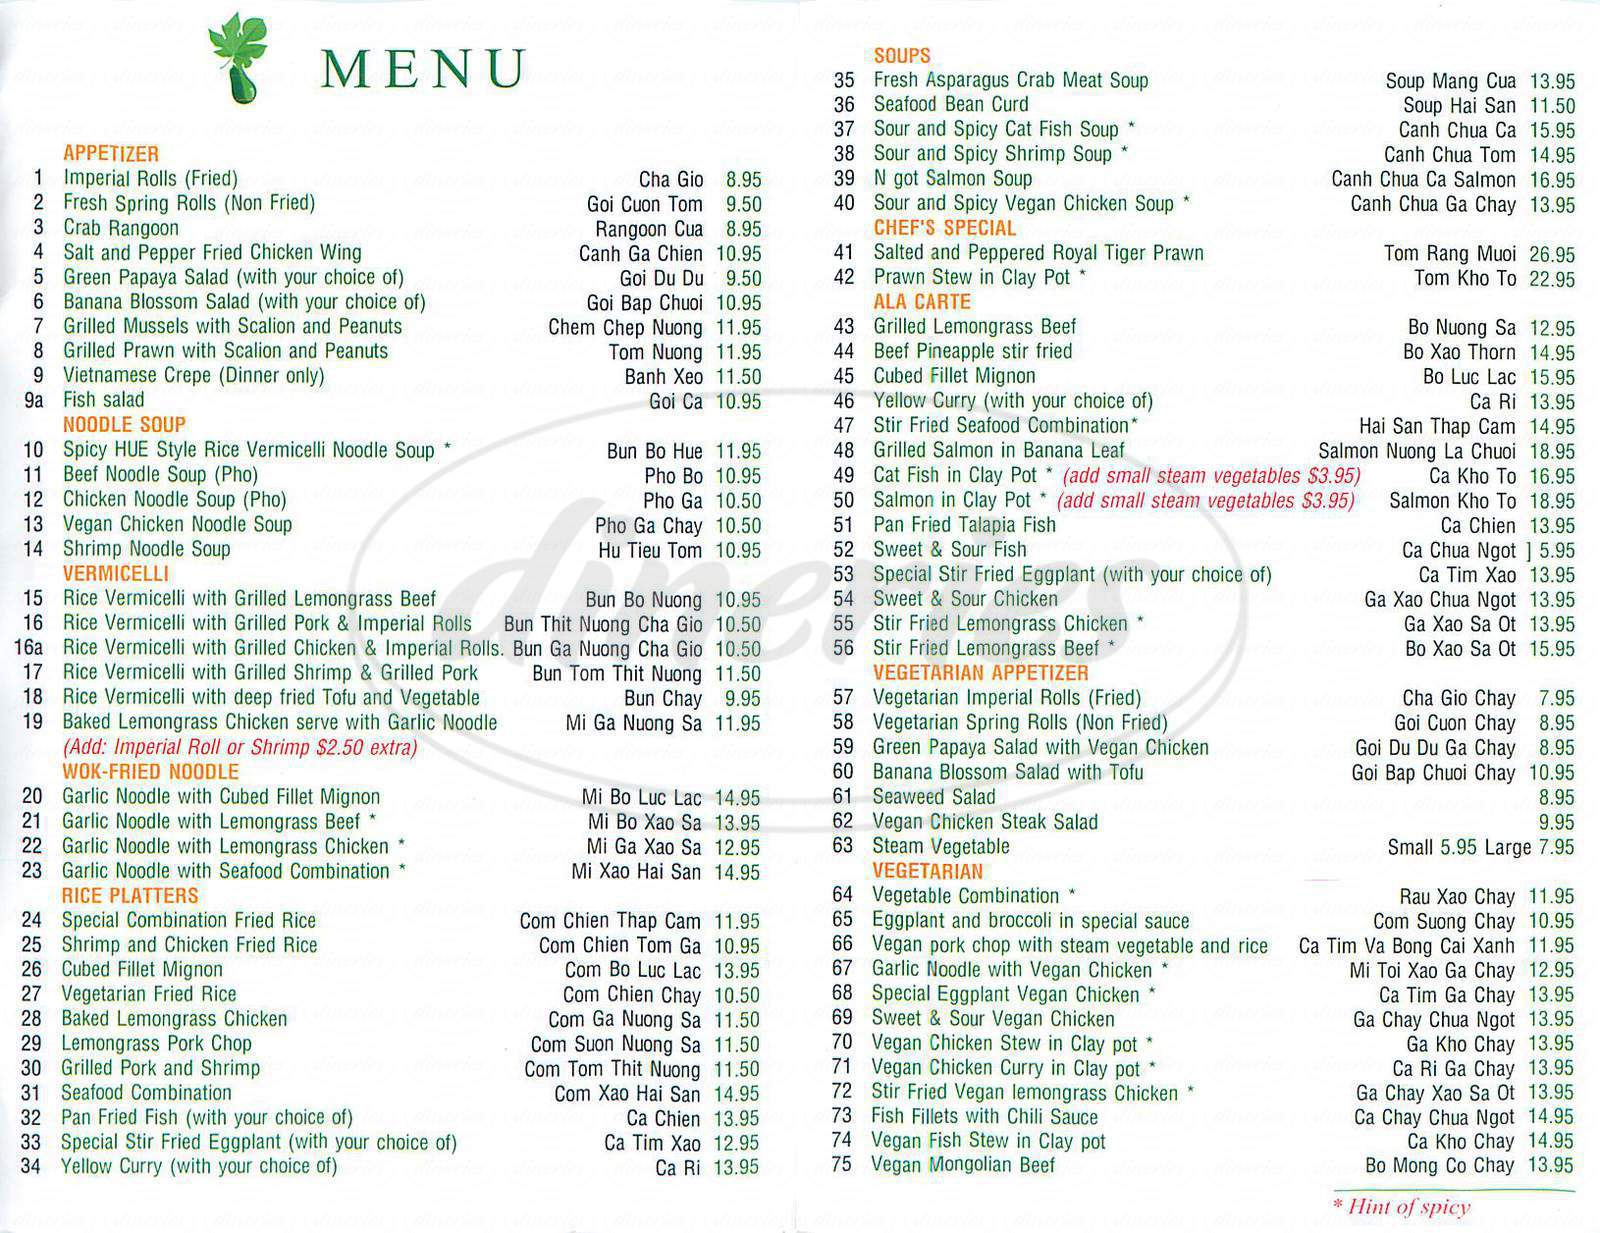 menu for Green Papaya